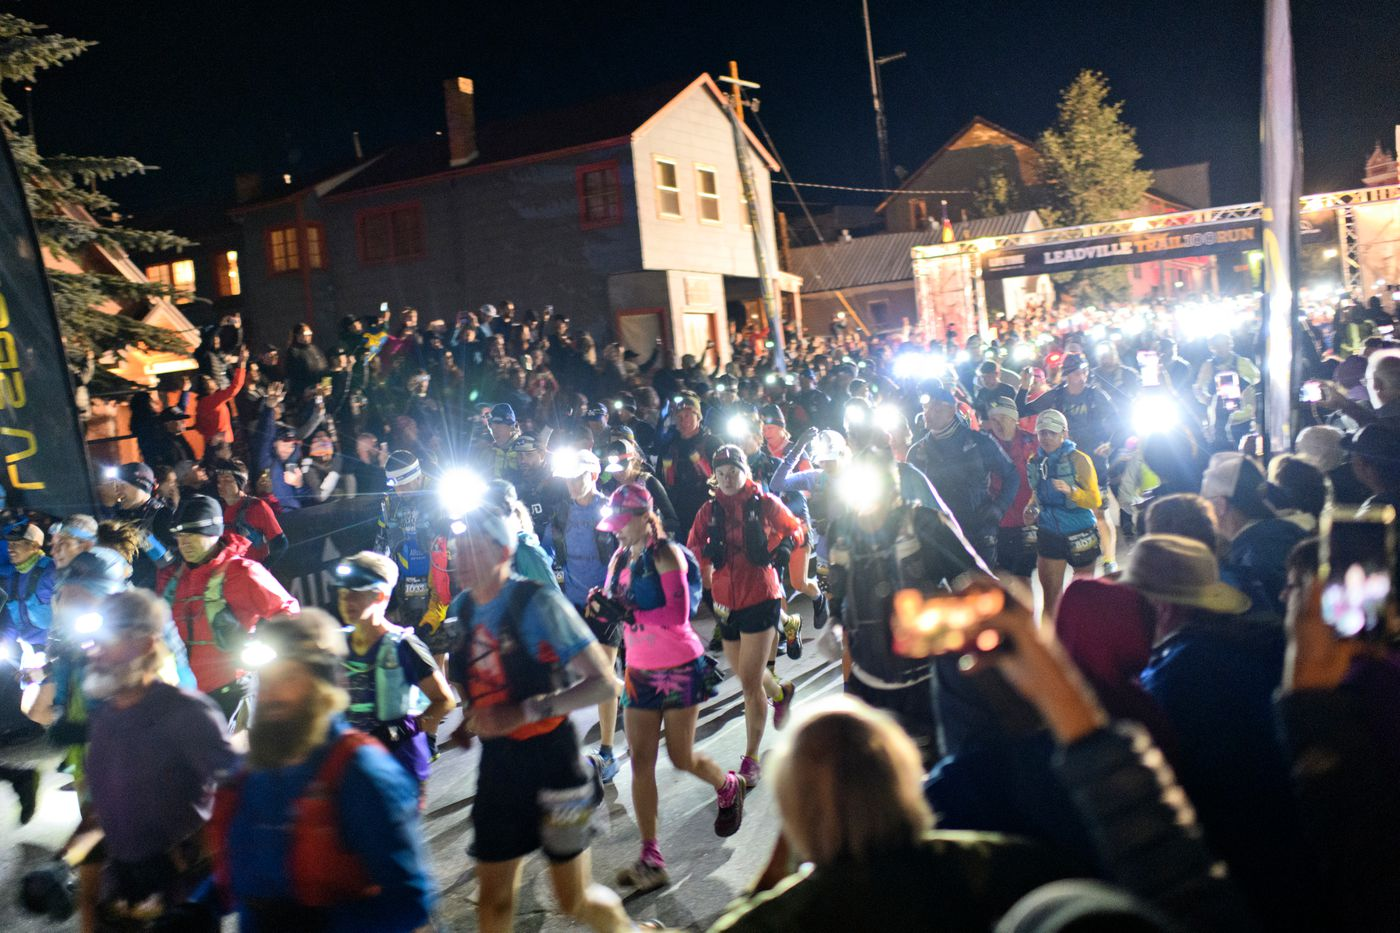 Racers leave the starting line of the Leadville Trail 100 Run at 4 a.m. in Leadville, Colorado, on August 17, 2019. (Marc Lester / ADN)